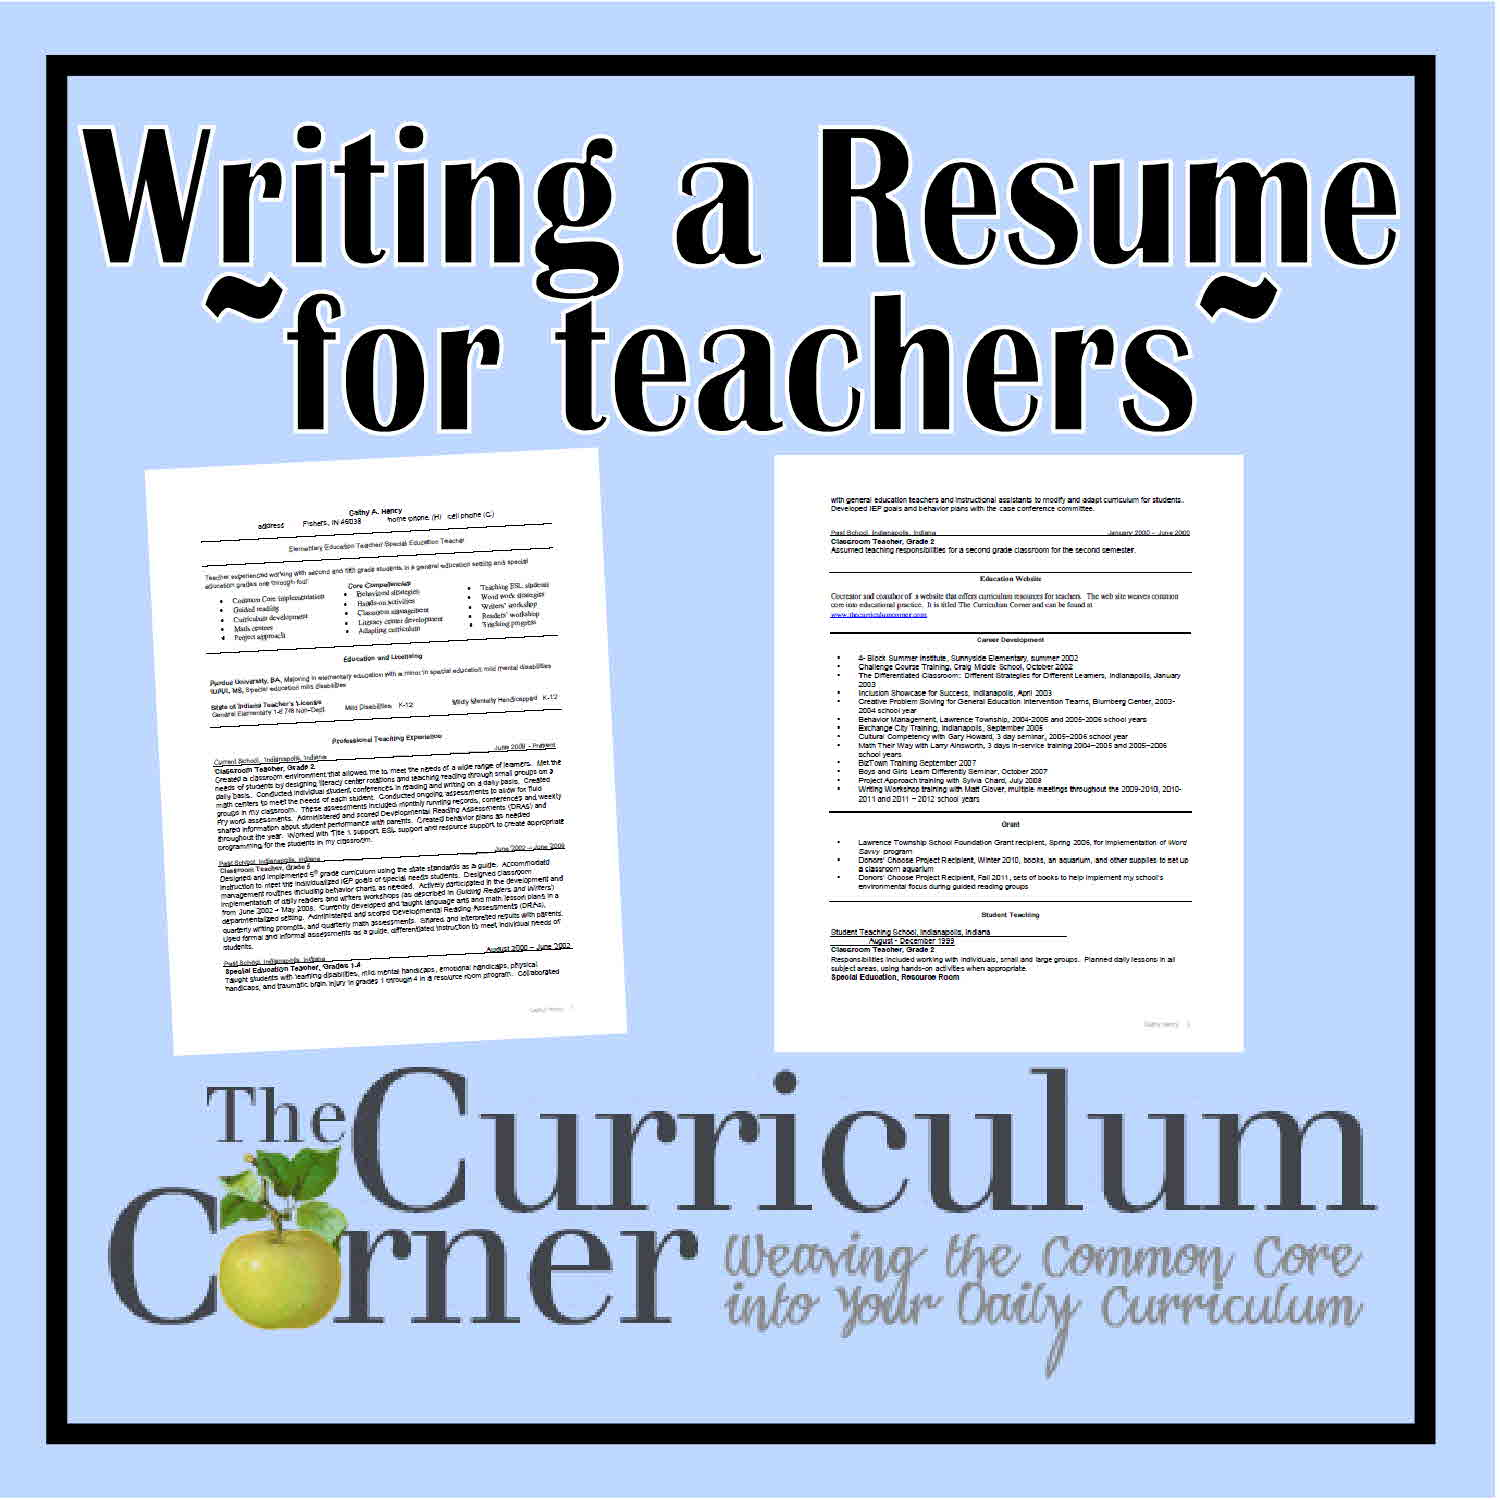 Best Resume Writing Services for Teachers